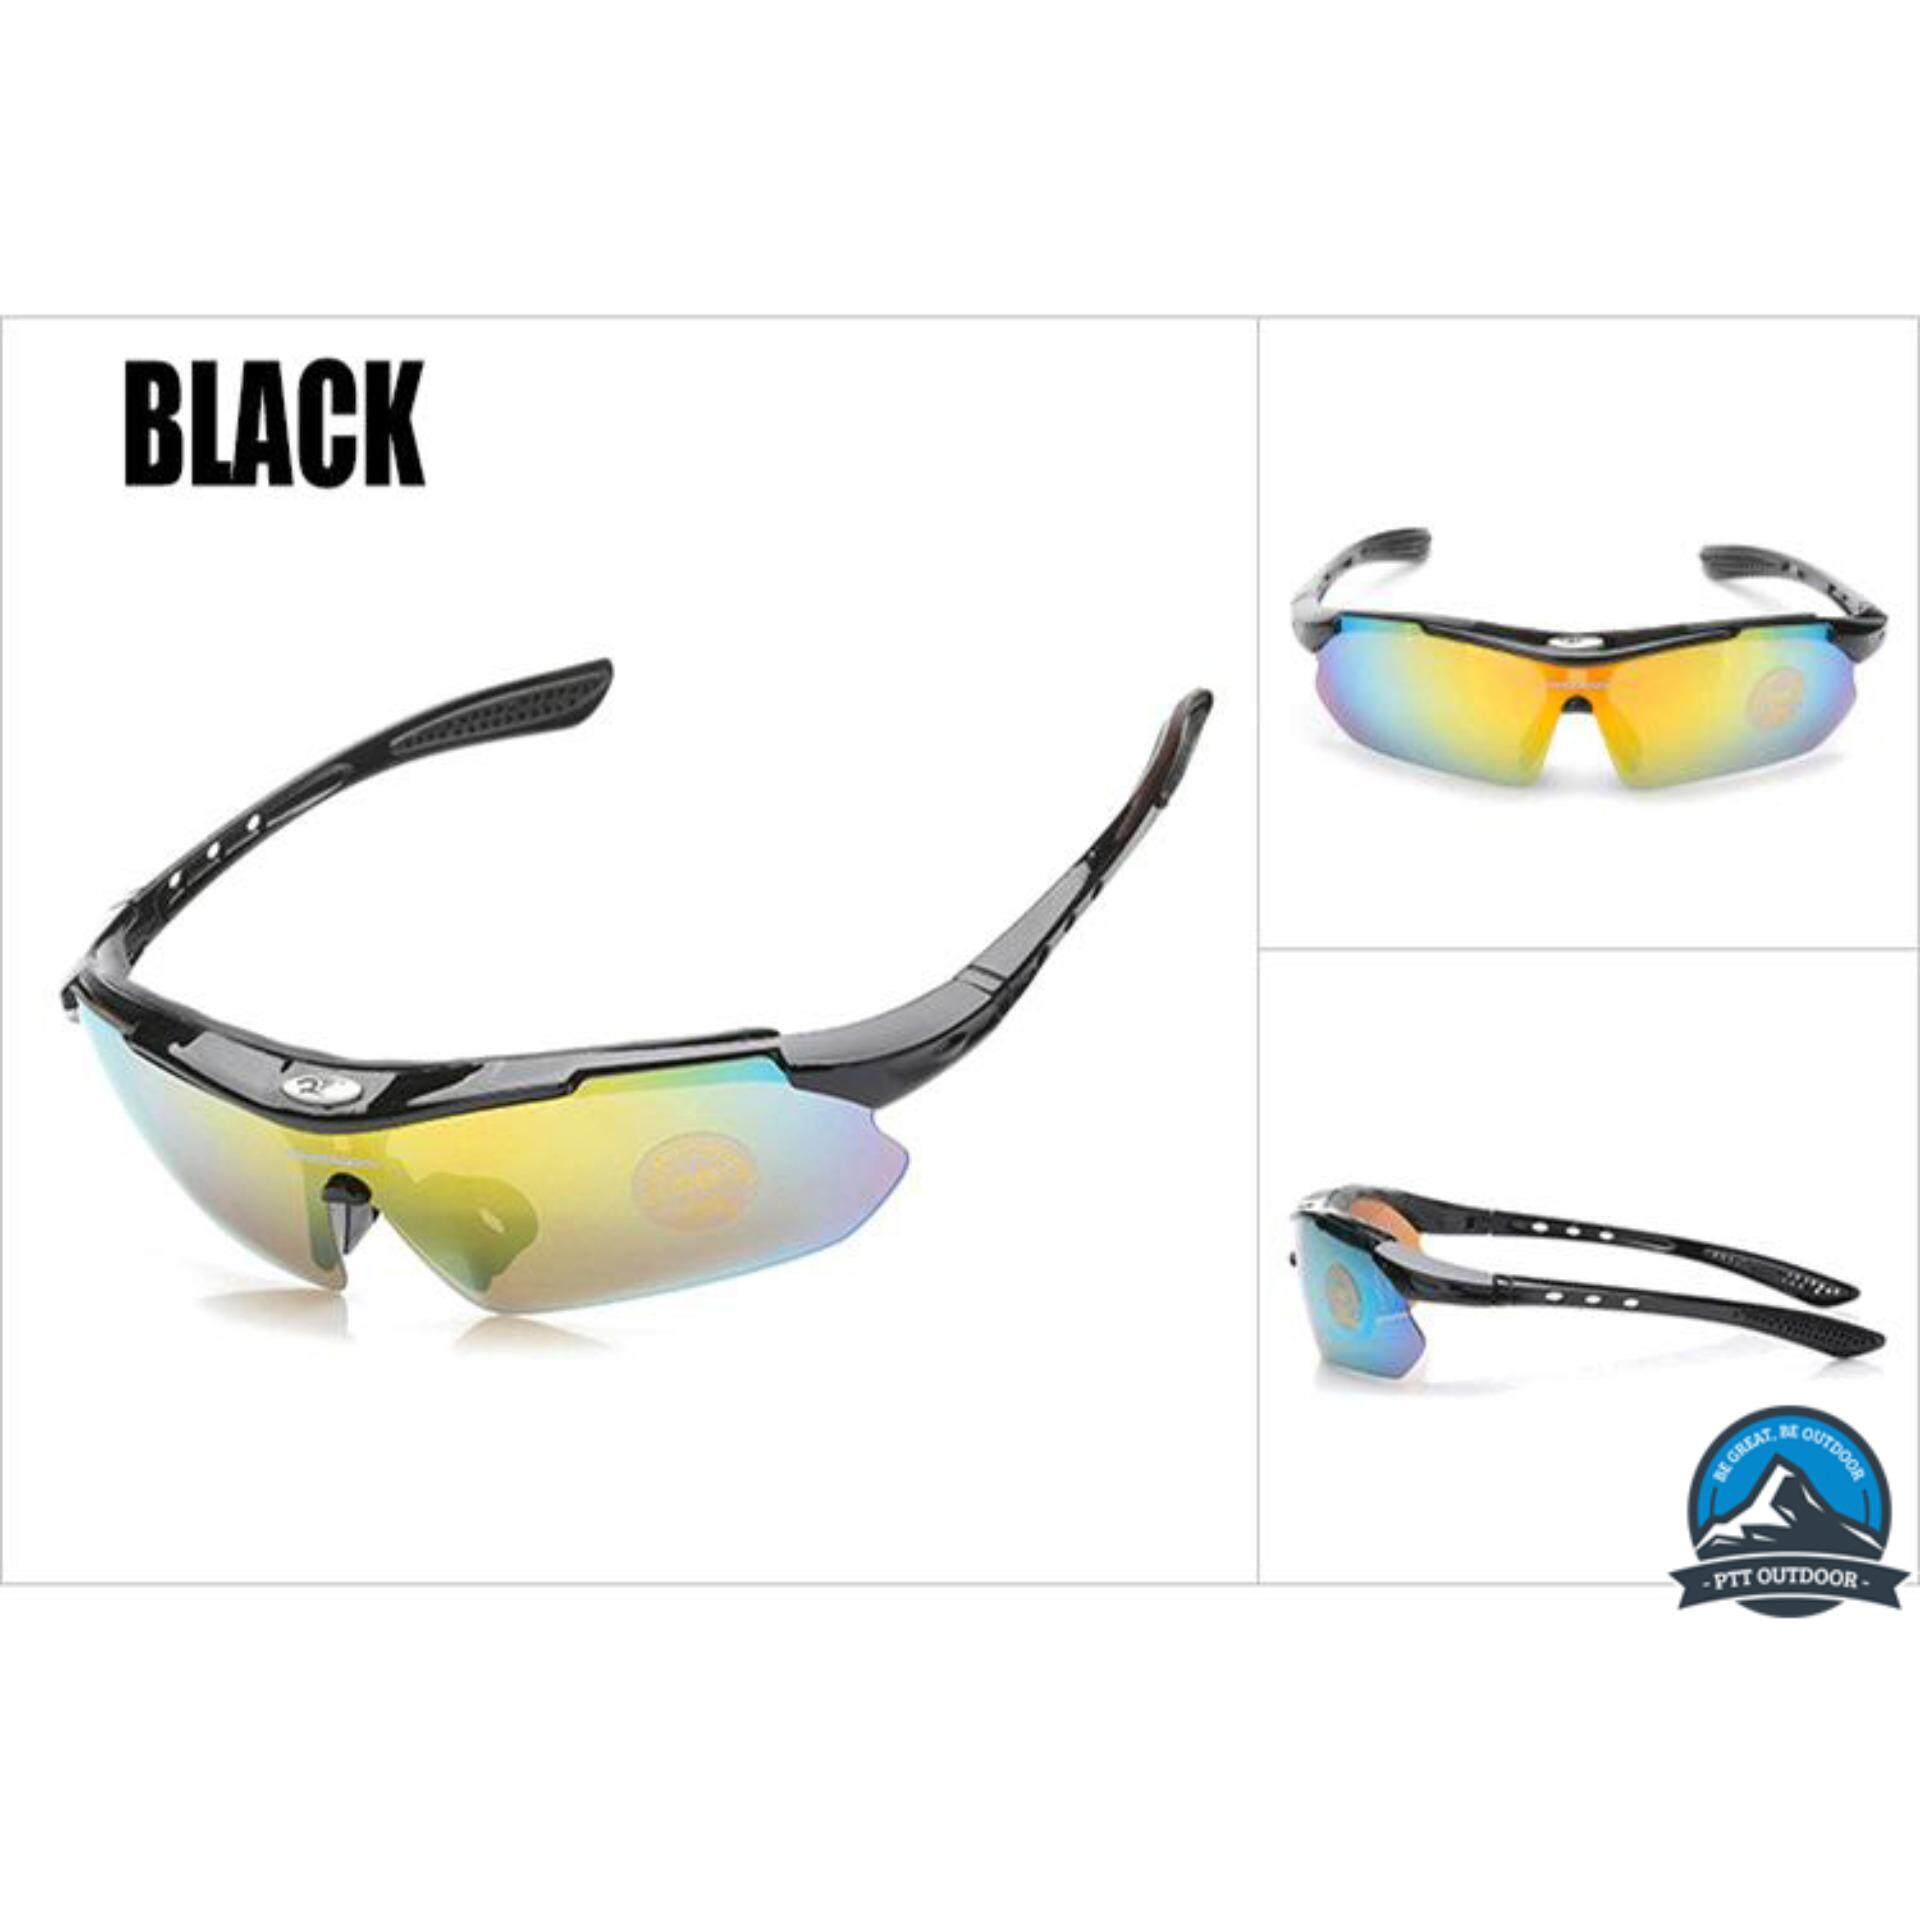 [READY STOCK] ROBESBON POLARIZED SUNGLASSES WITH 5 CHANGEABLE LENSES – BLACK